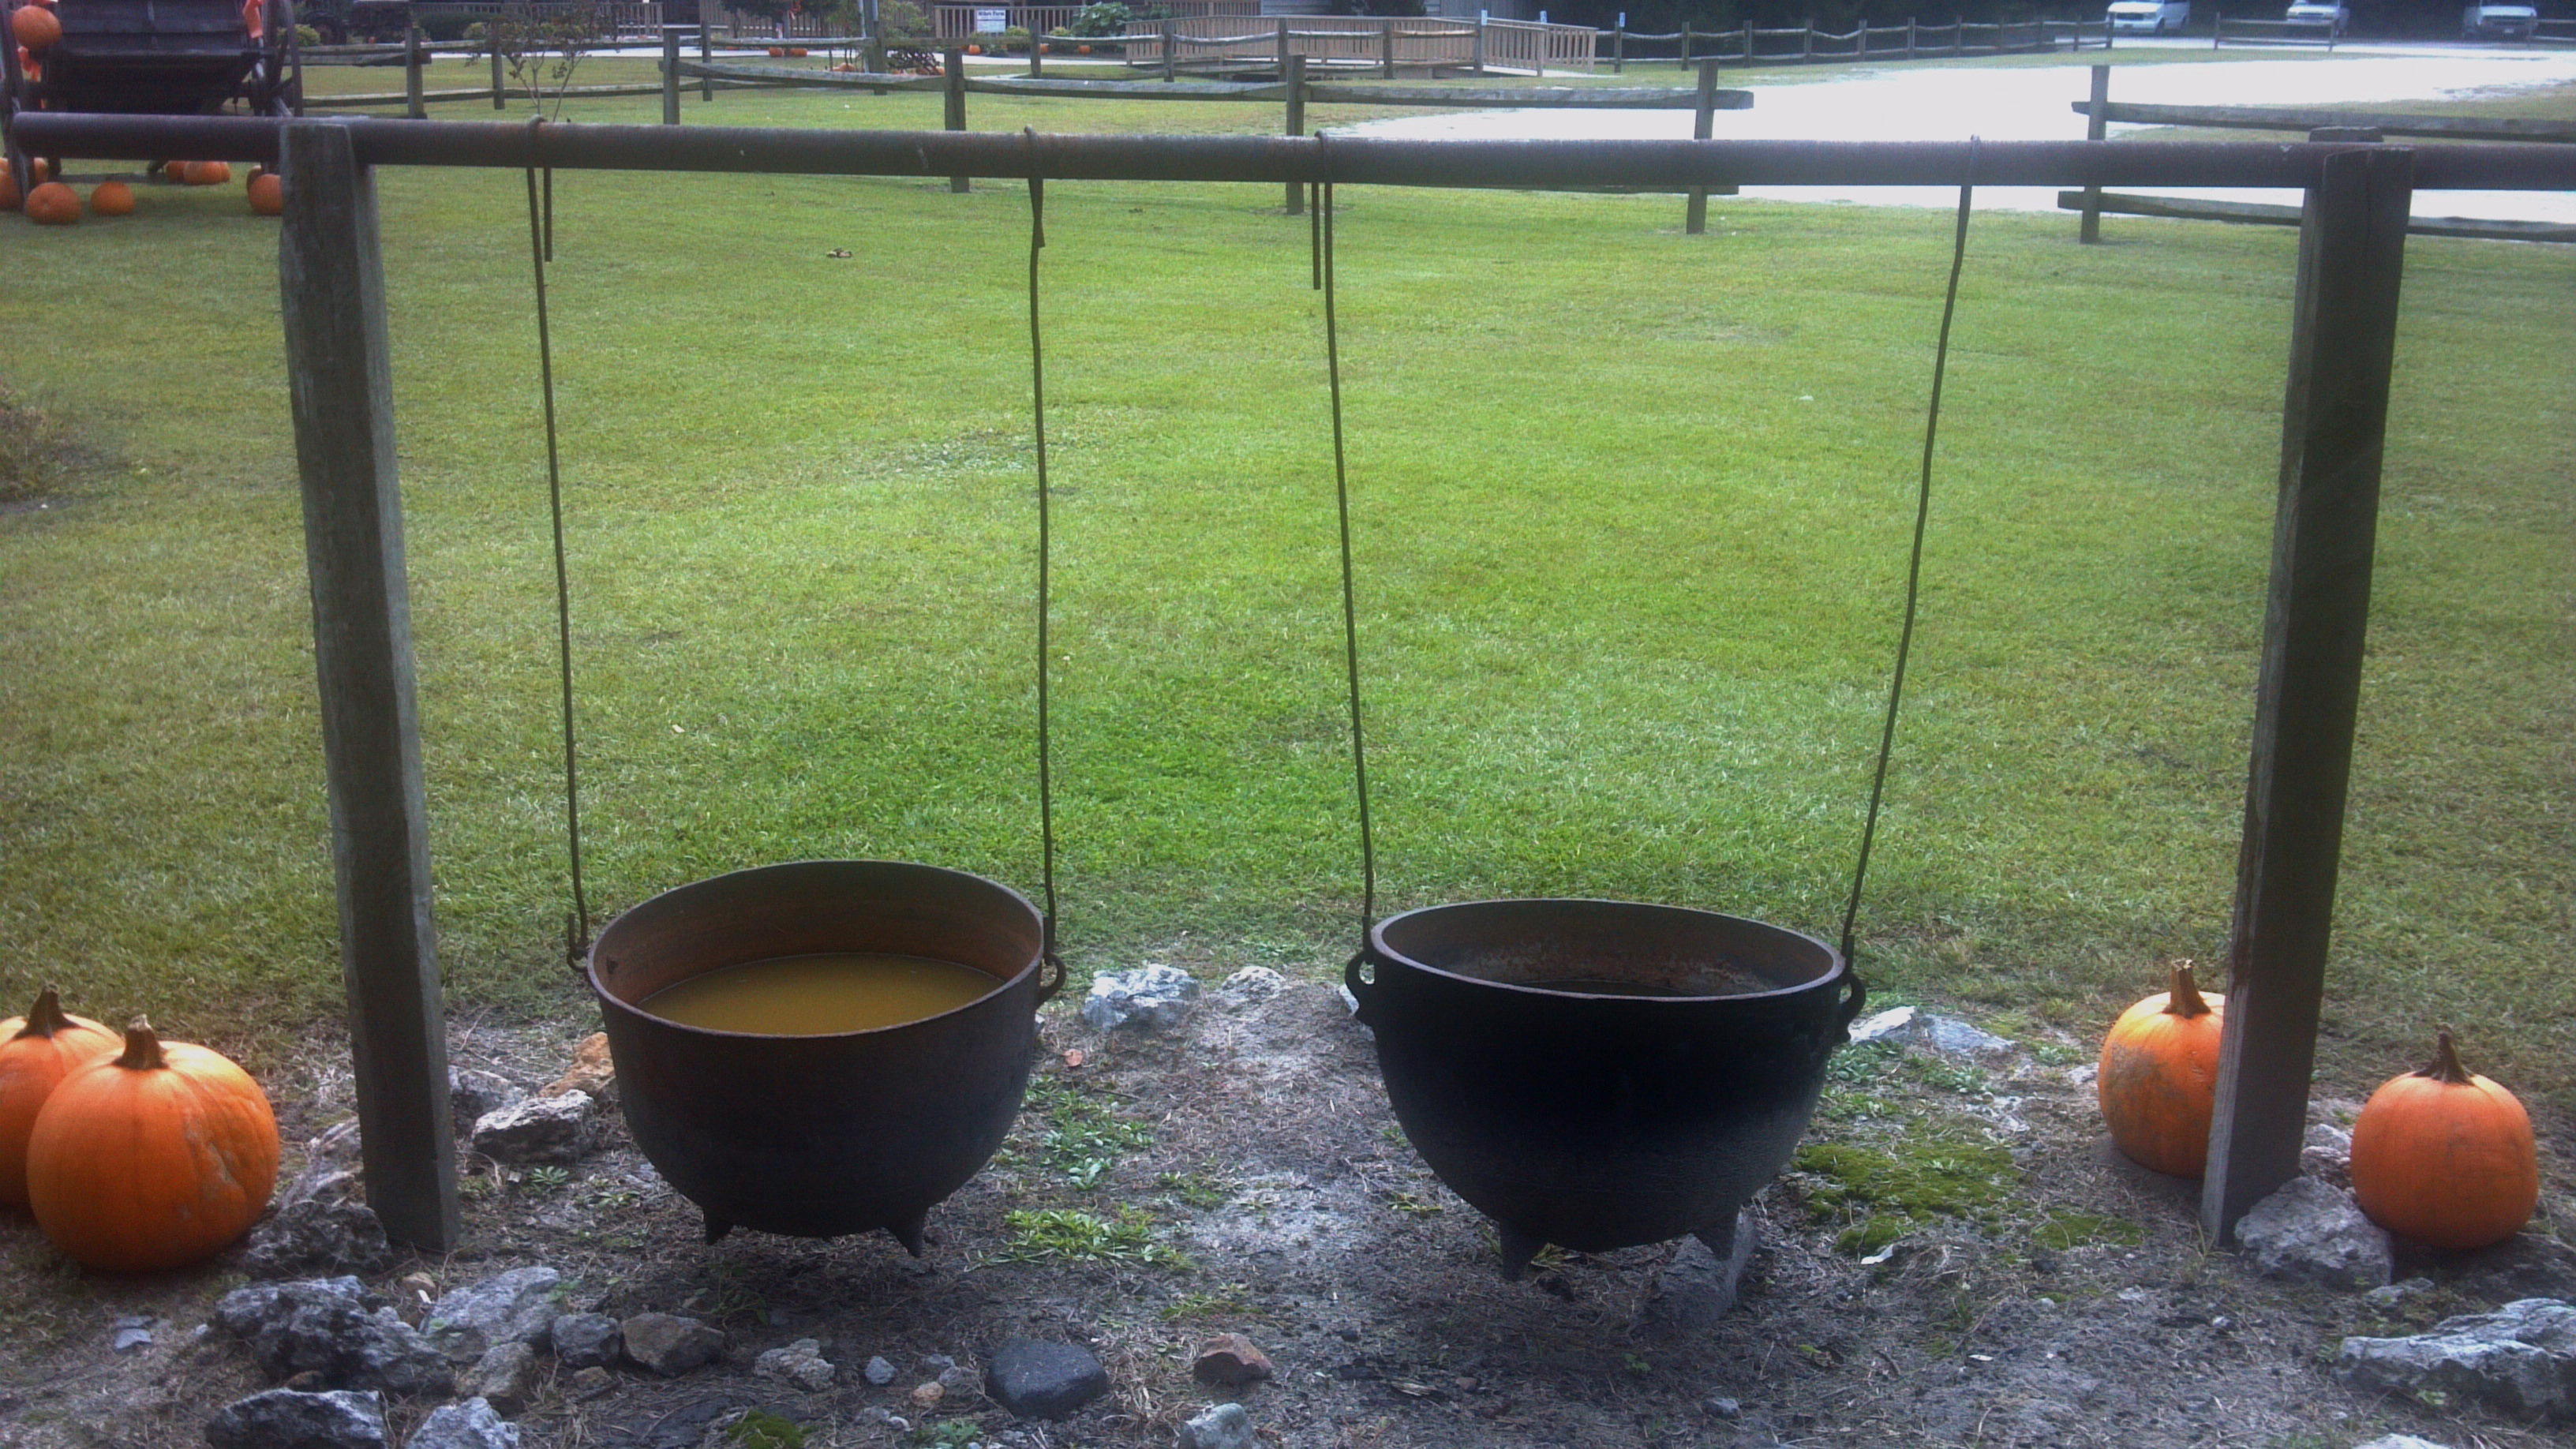 WASH POTS (PHOTO BY PASTOR DAVIS)